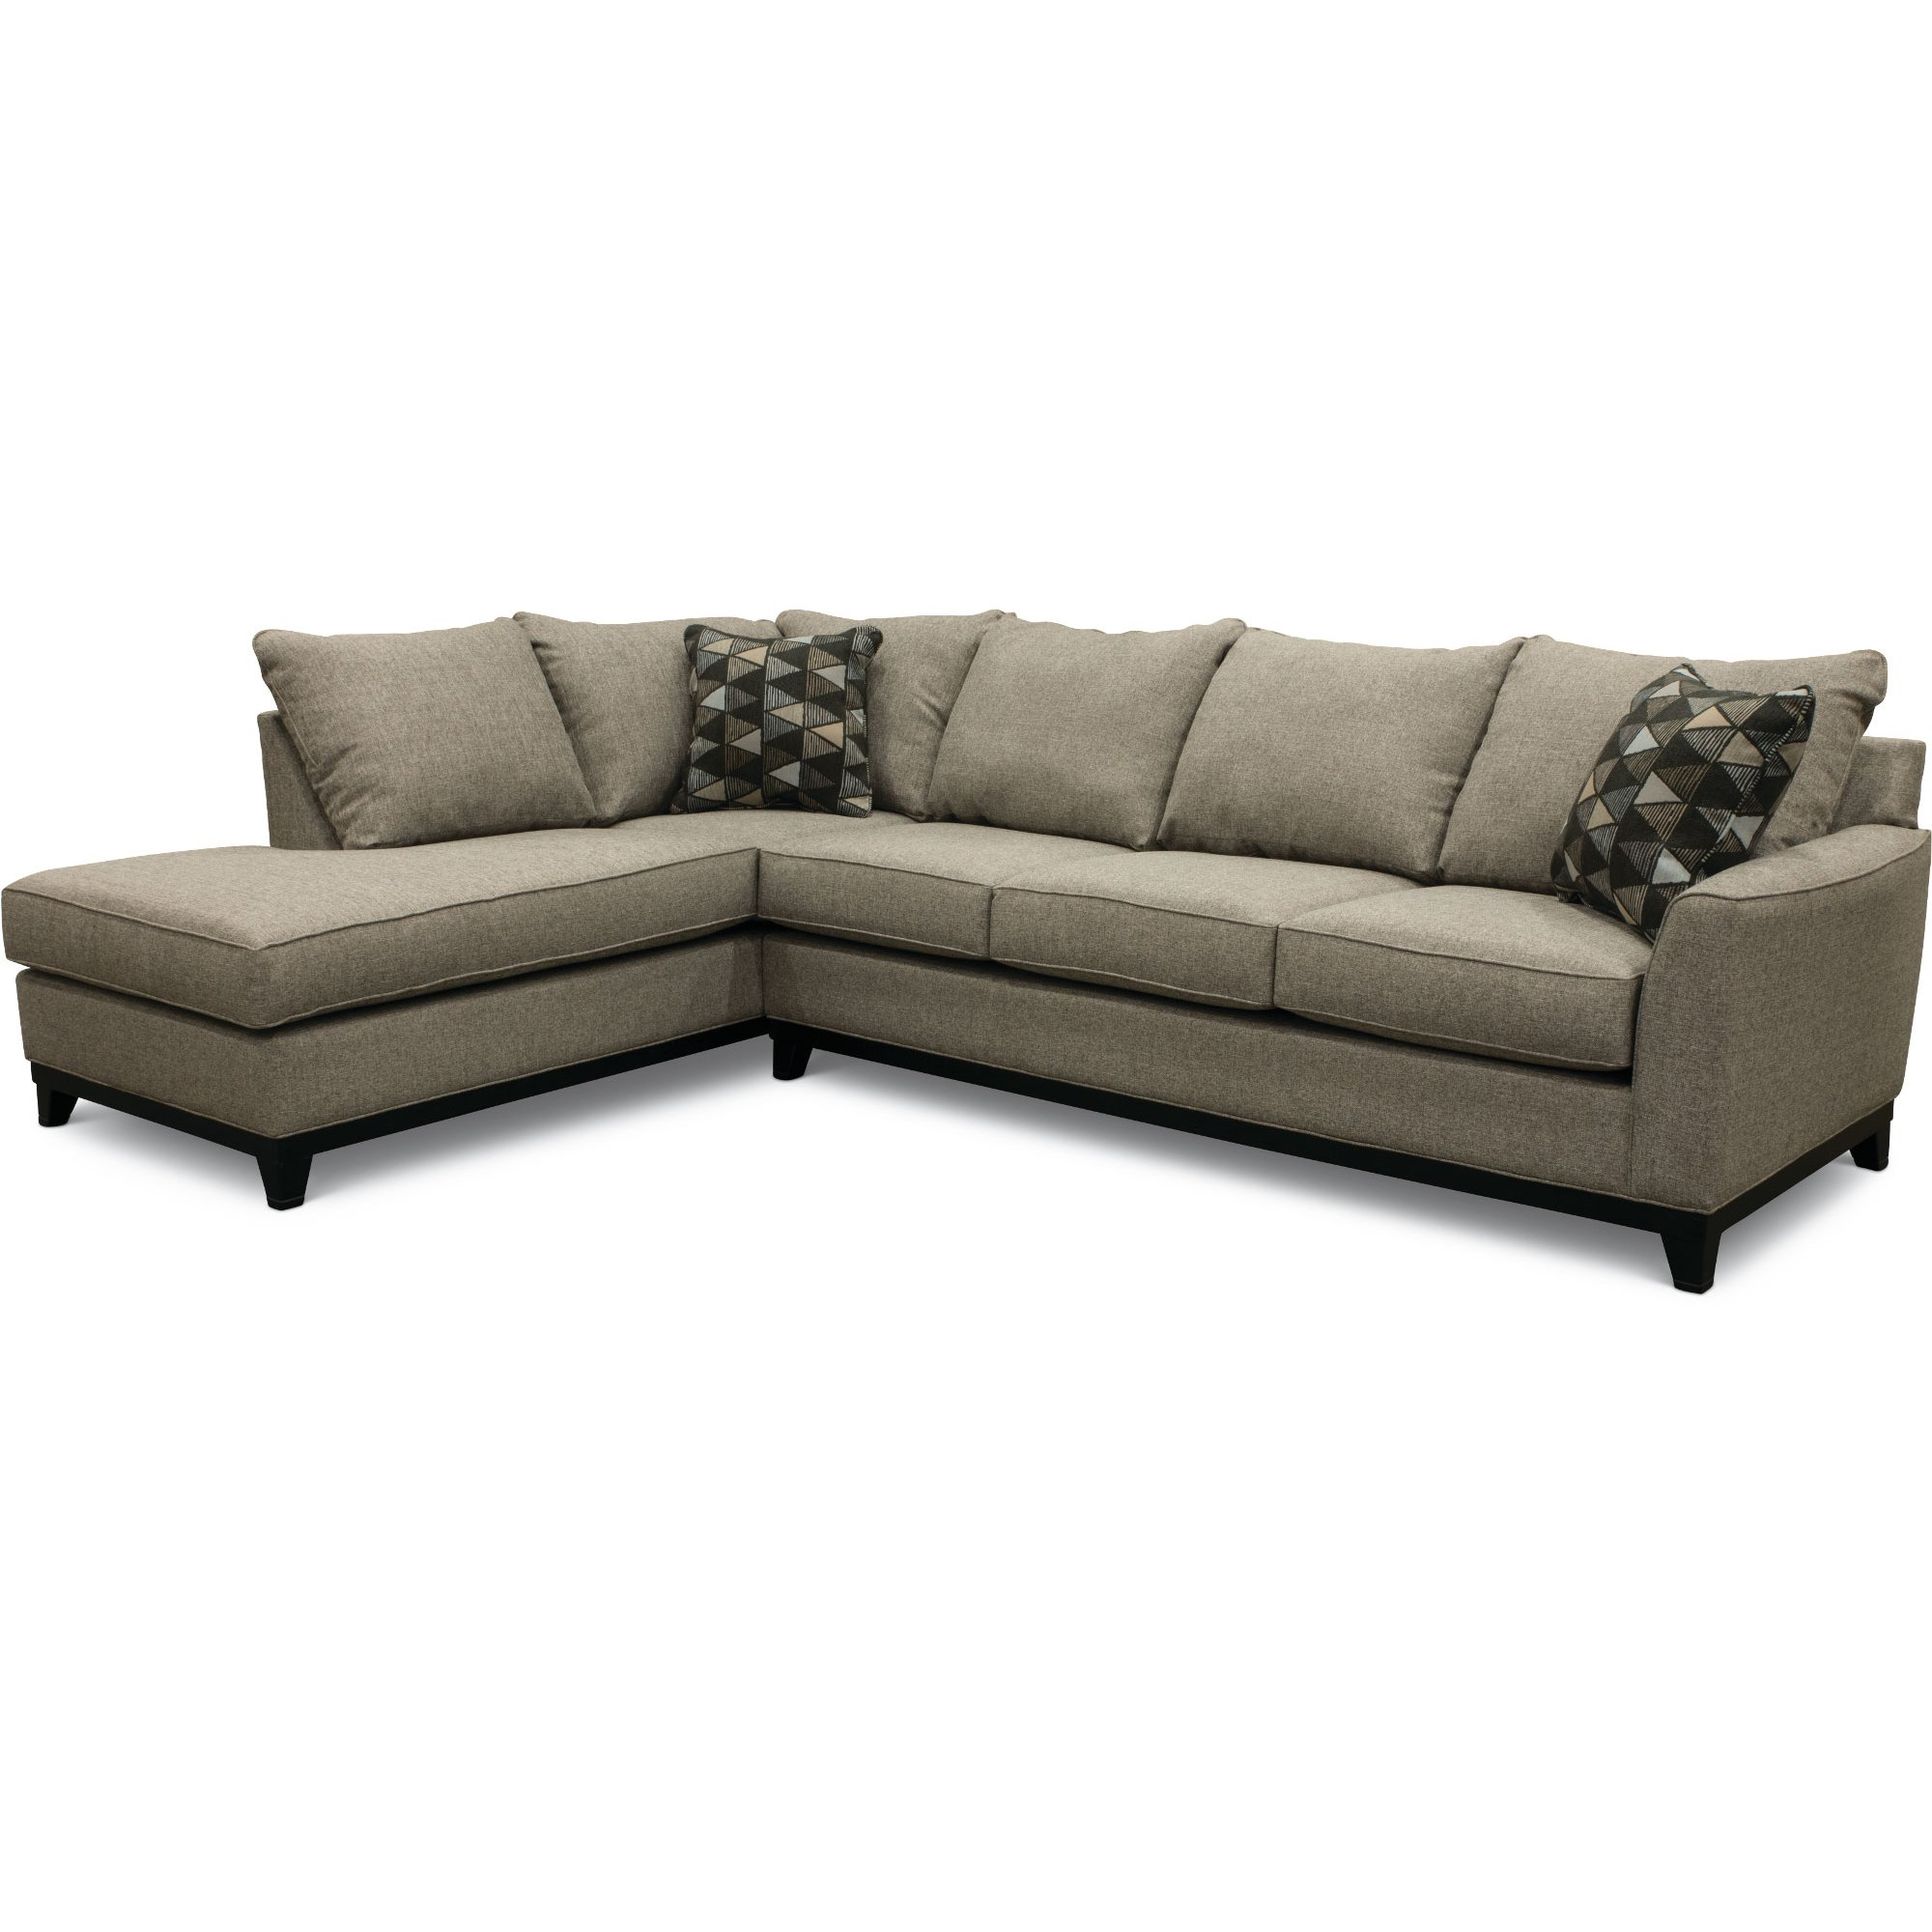 gray leather fantastic new modern com sofa couch within grey inside with contemporary sectional chaise